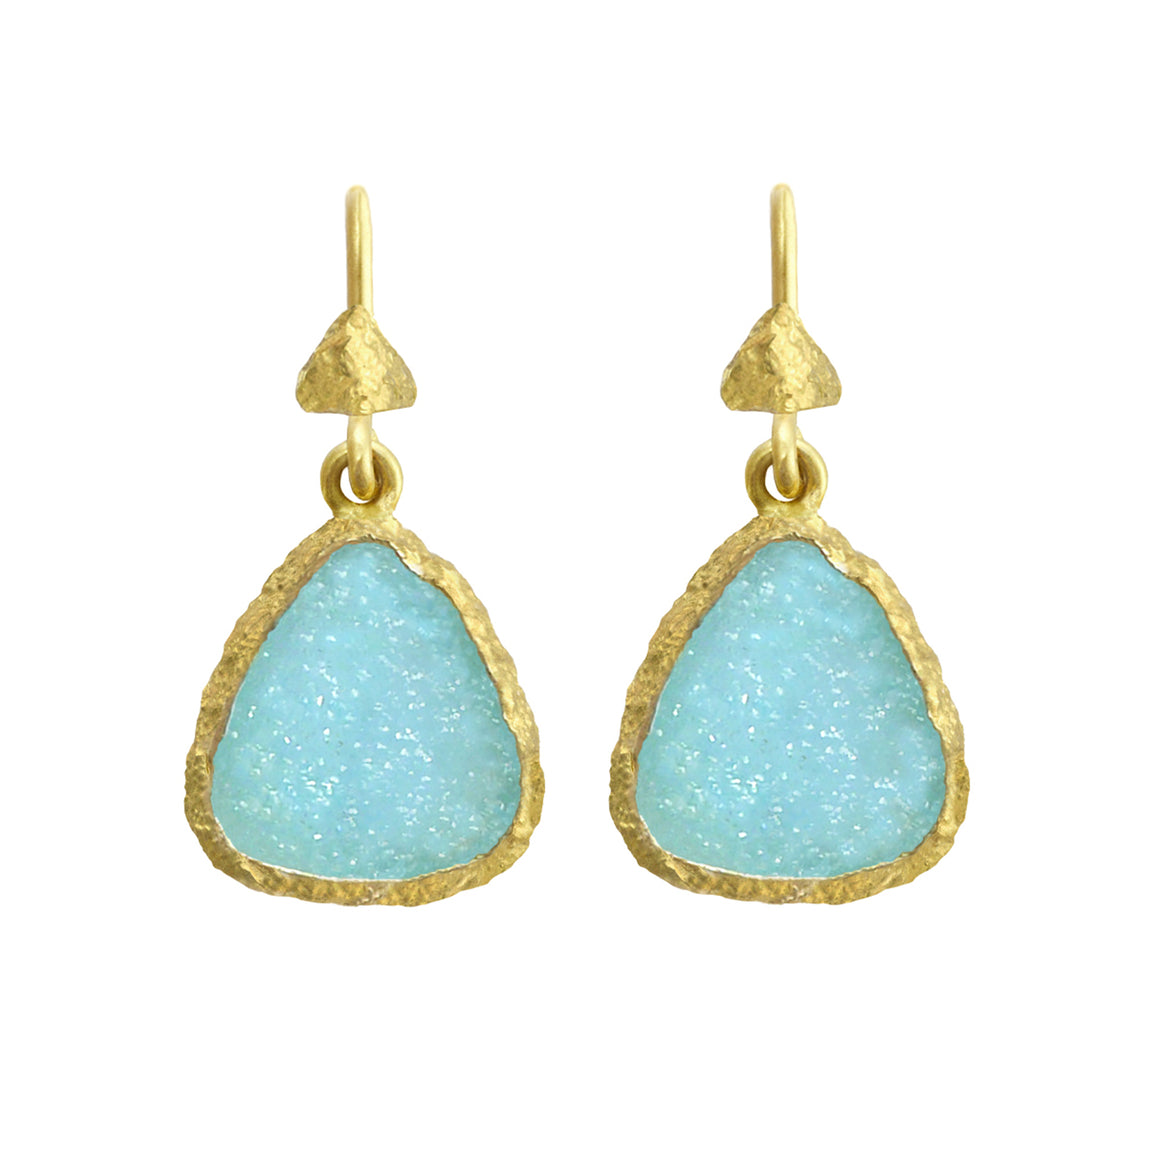 Hemimorphite Fresco Earrings by Laurie Kaiser